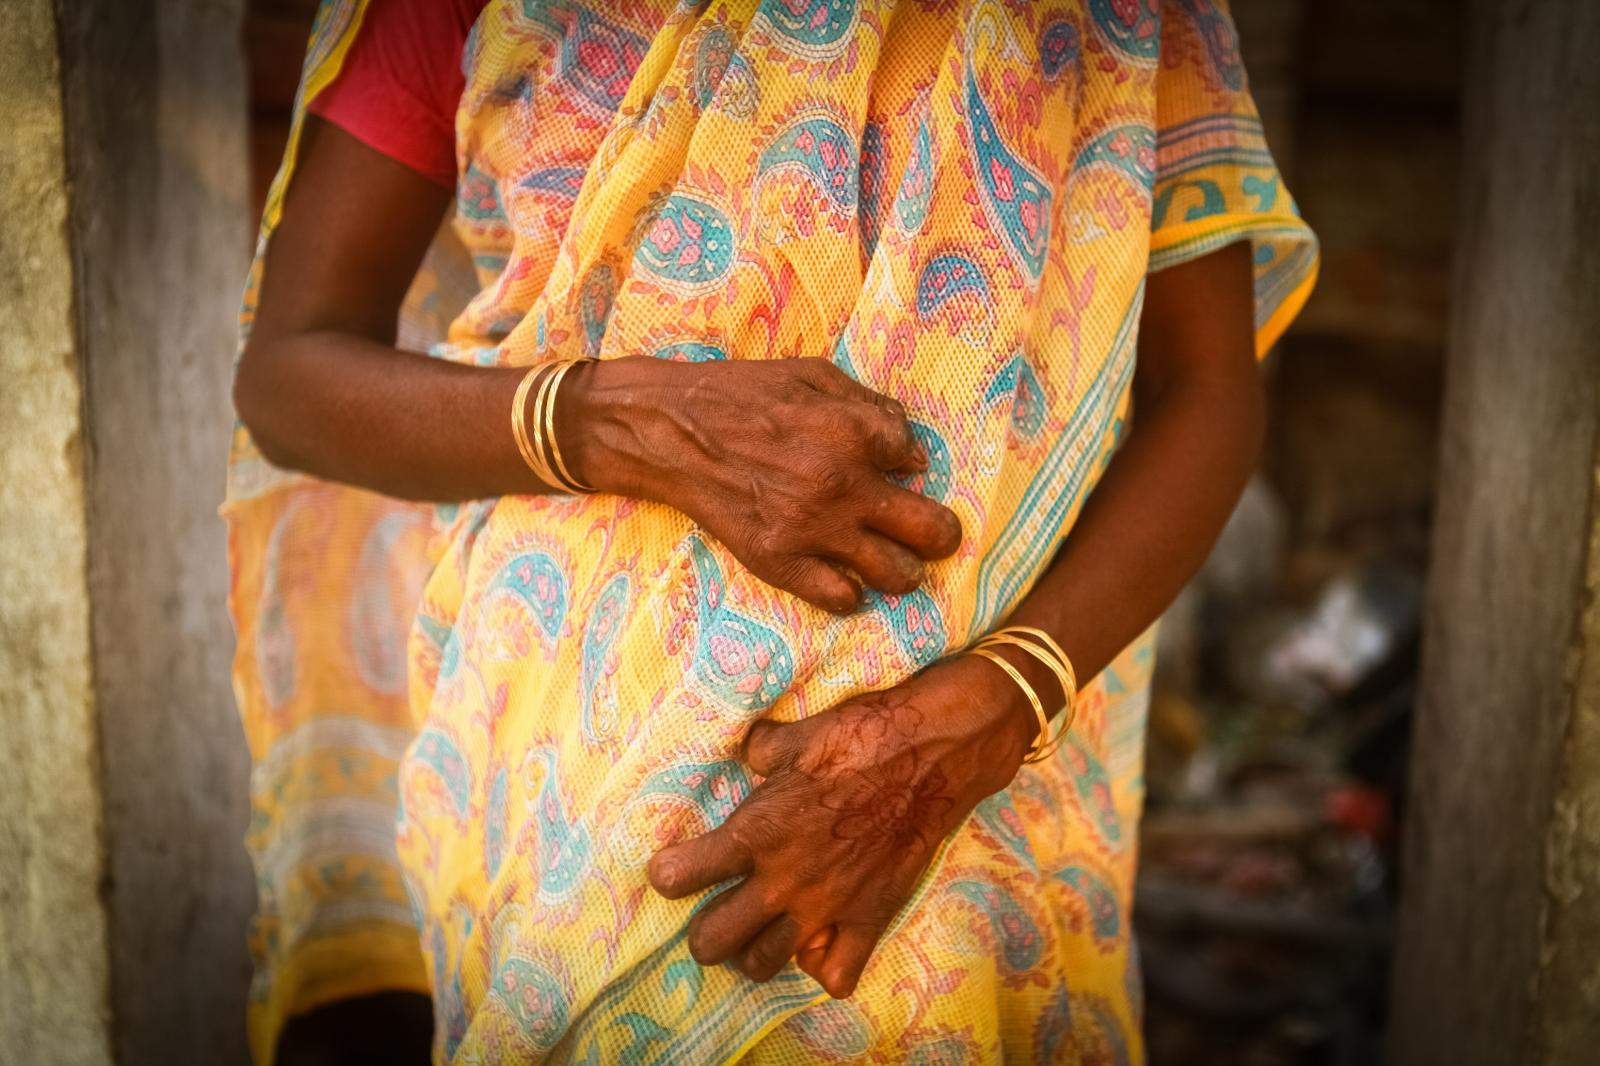 Photography image - Loading 01_Manjo_Devi_s_hands_that_are_severely_deformed_by_leprosy_disease_Sankat_Mochan_Varanasi__India_2012_The_Spirit_Bloweth_Leprosy_Project.jpg